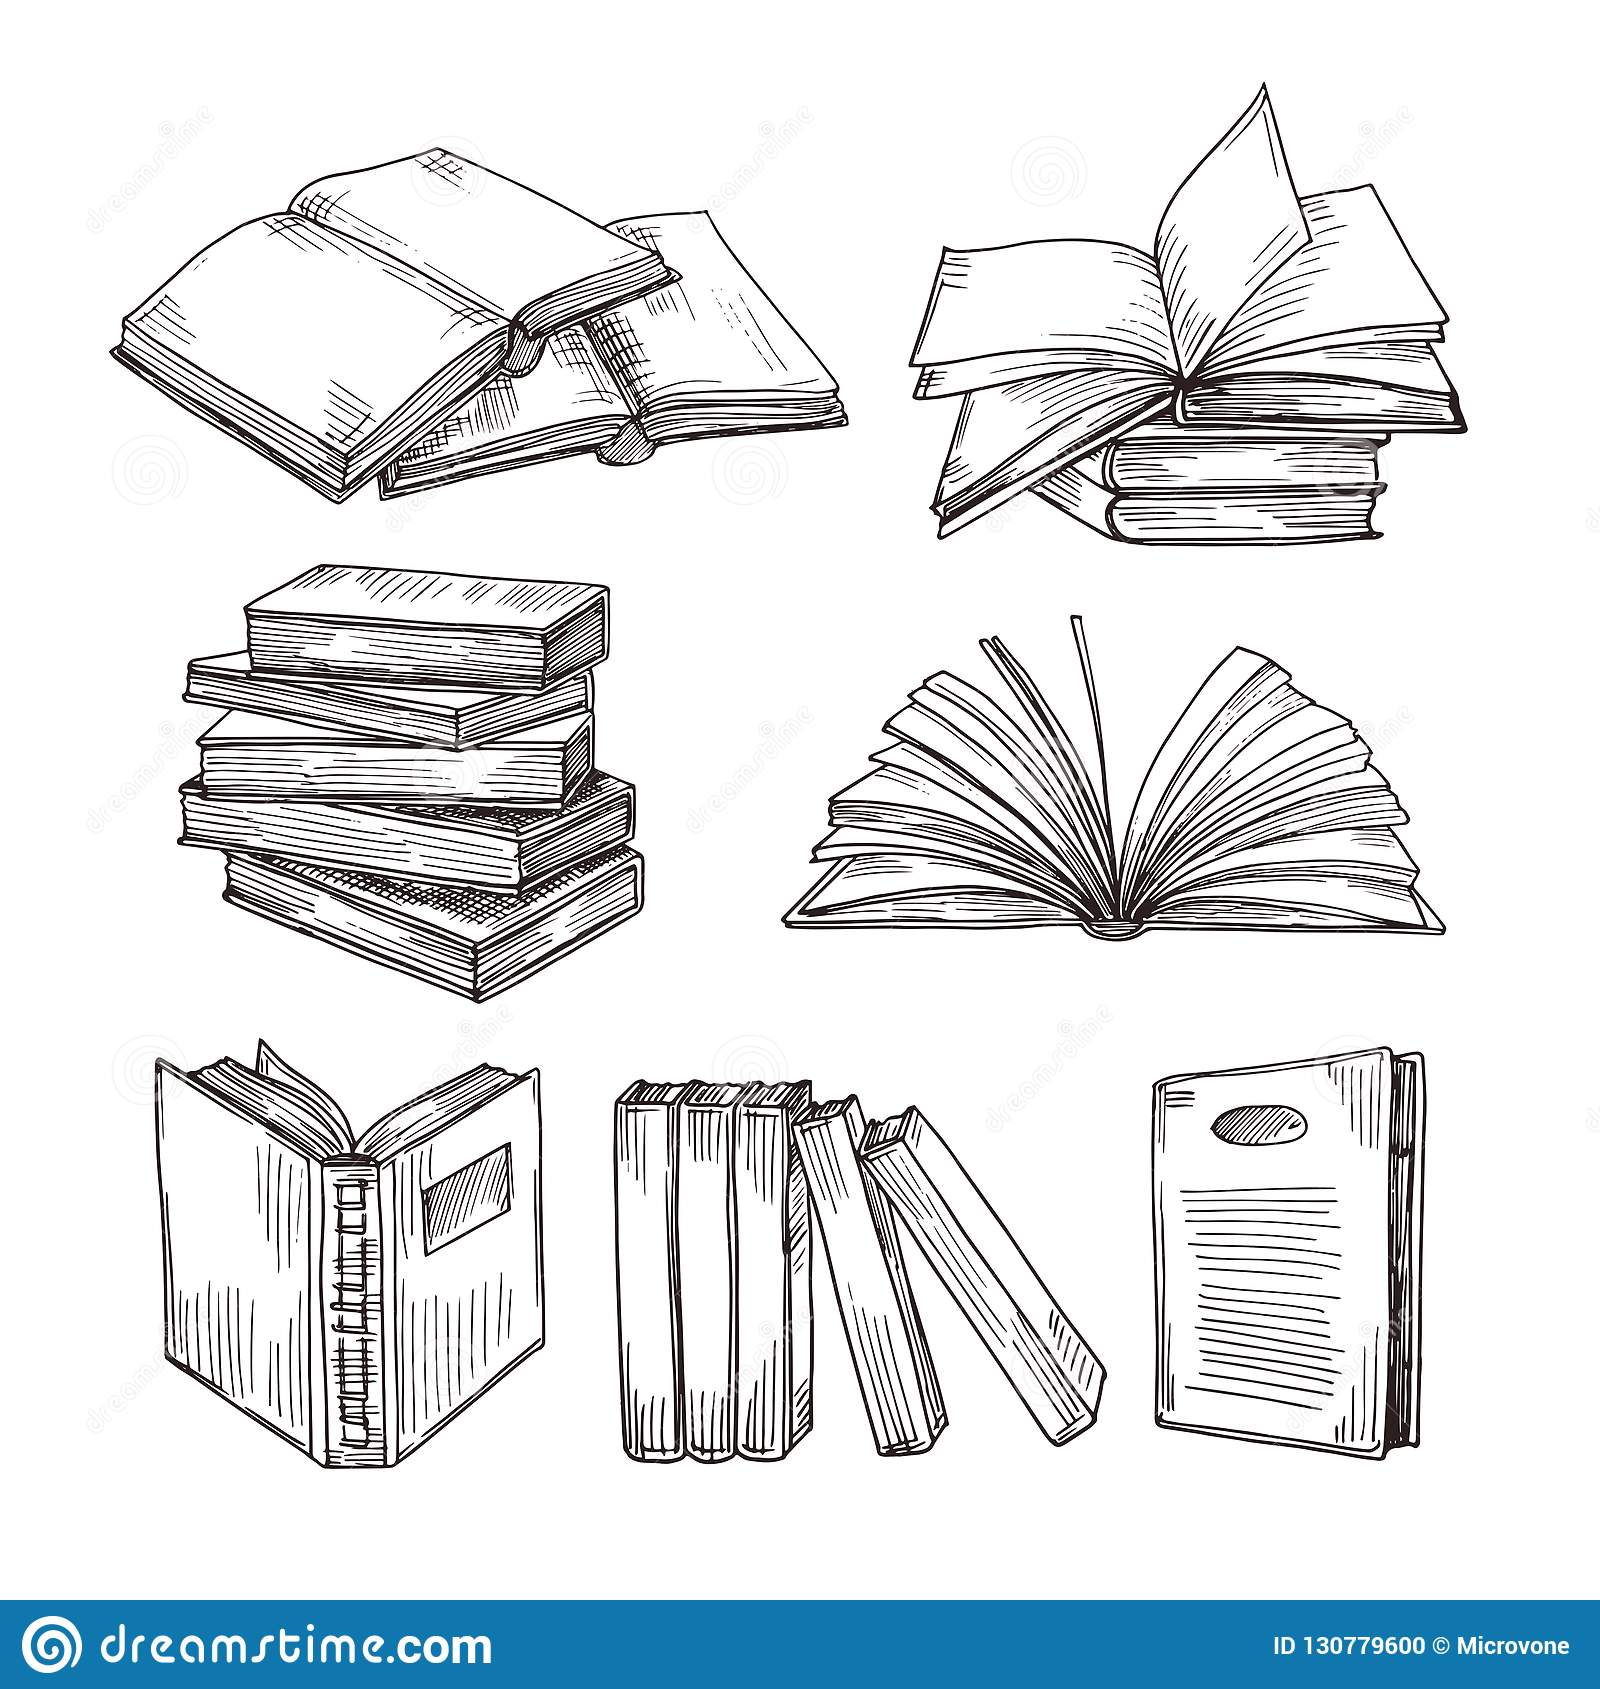 Sketch books. Ink drawing vintage open book and books pile. School education and library doodle vector symbols